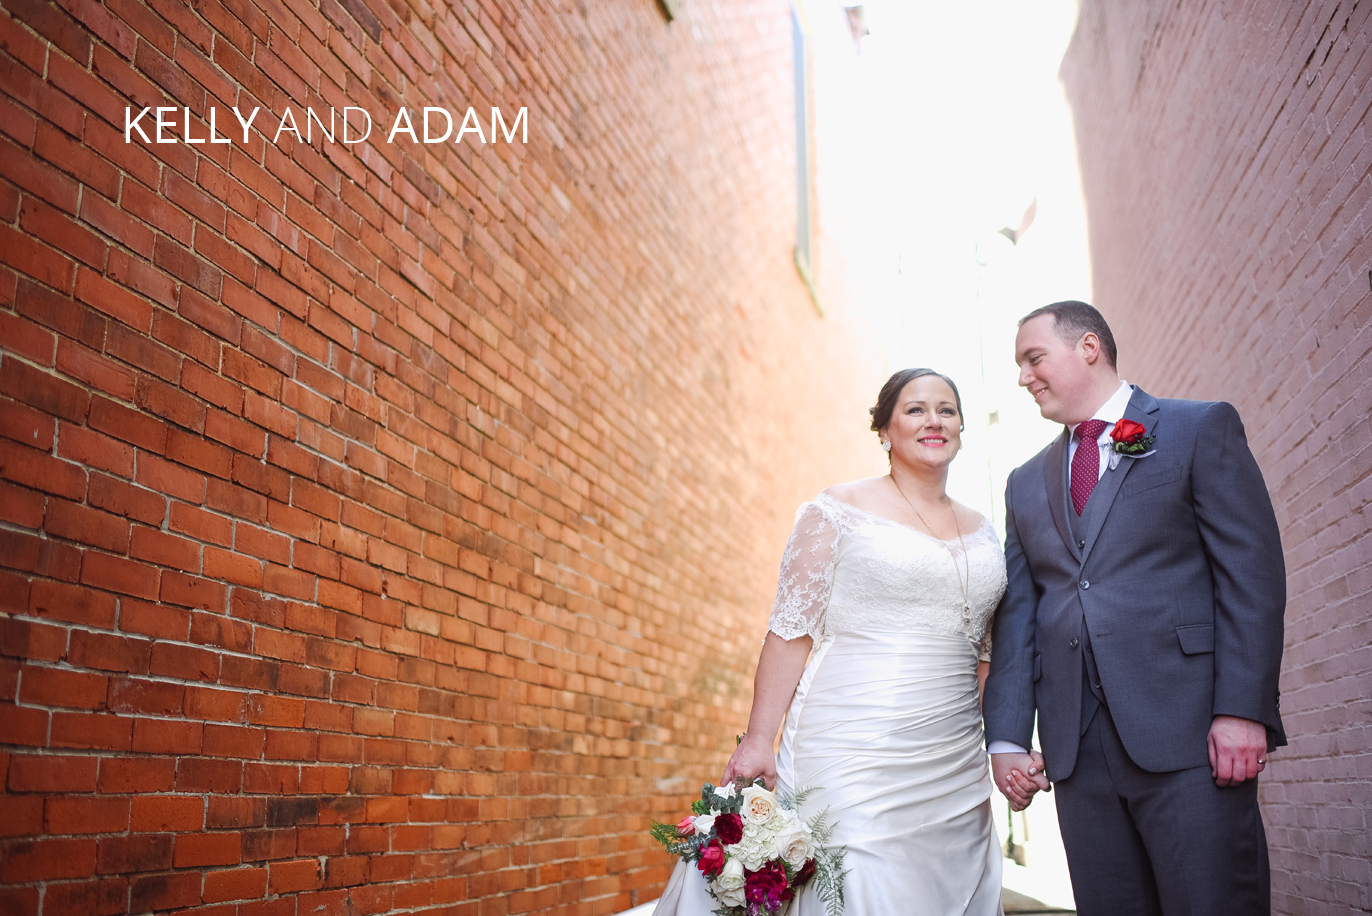 couple in rustic alley on their wedding day